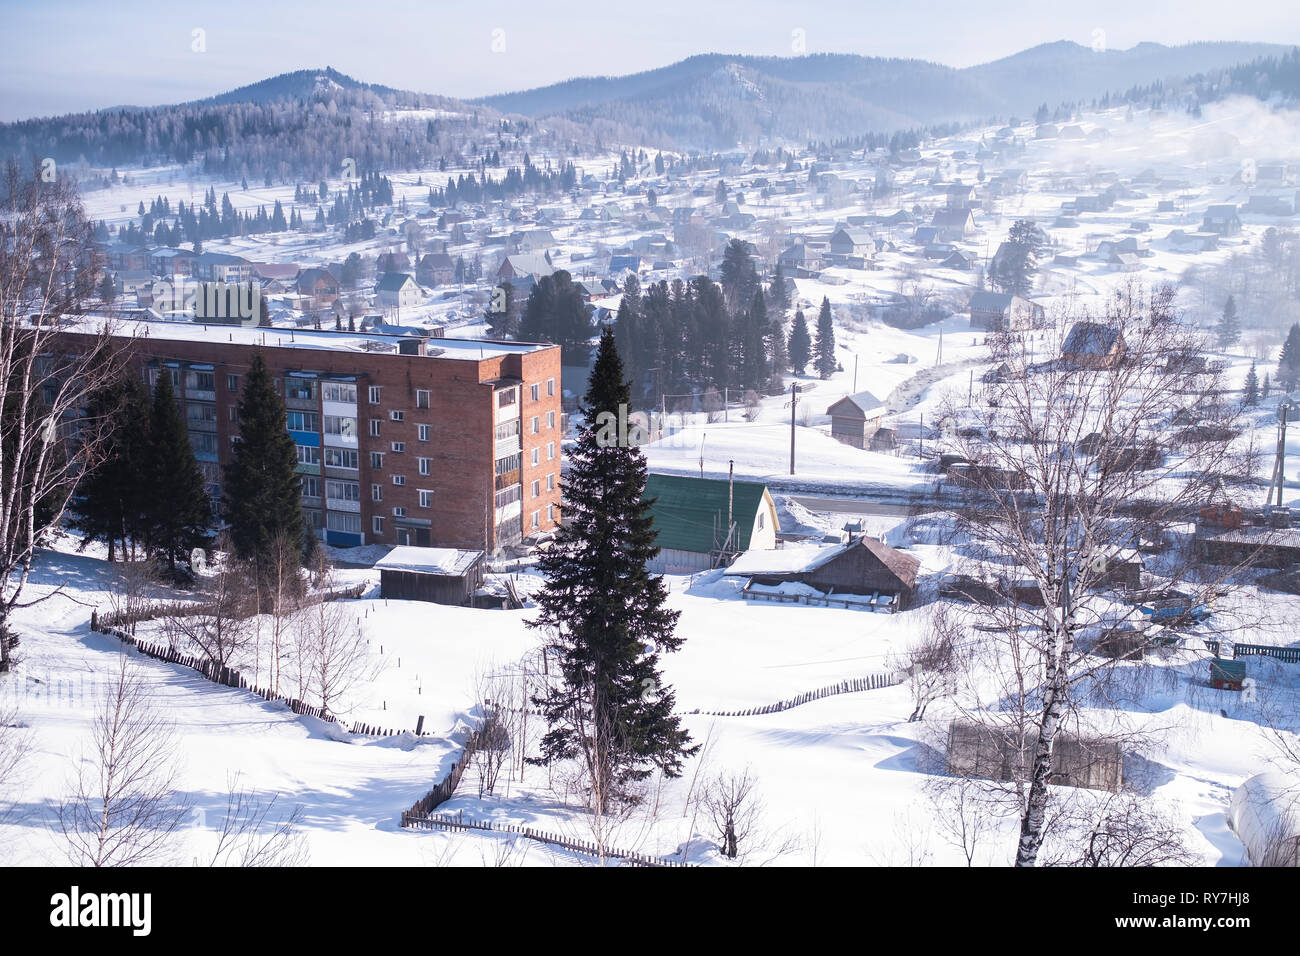 View of the Sheregesh village in Mountain Shoria, Siberia, Russia. - Stock Image